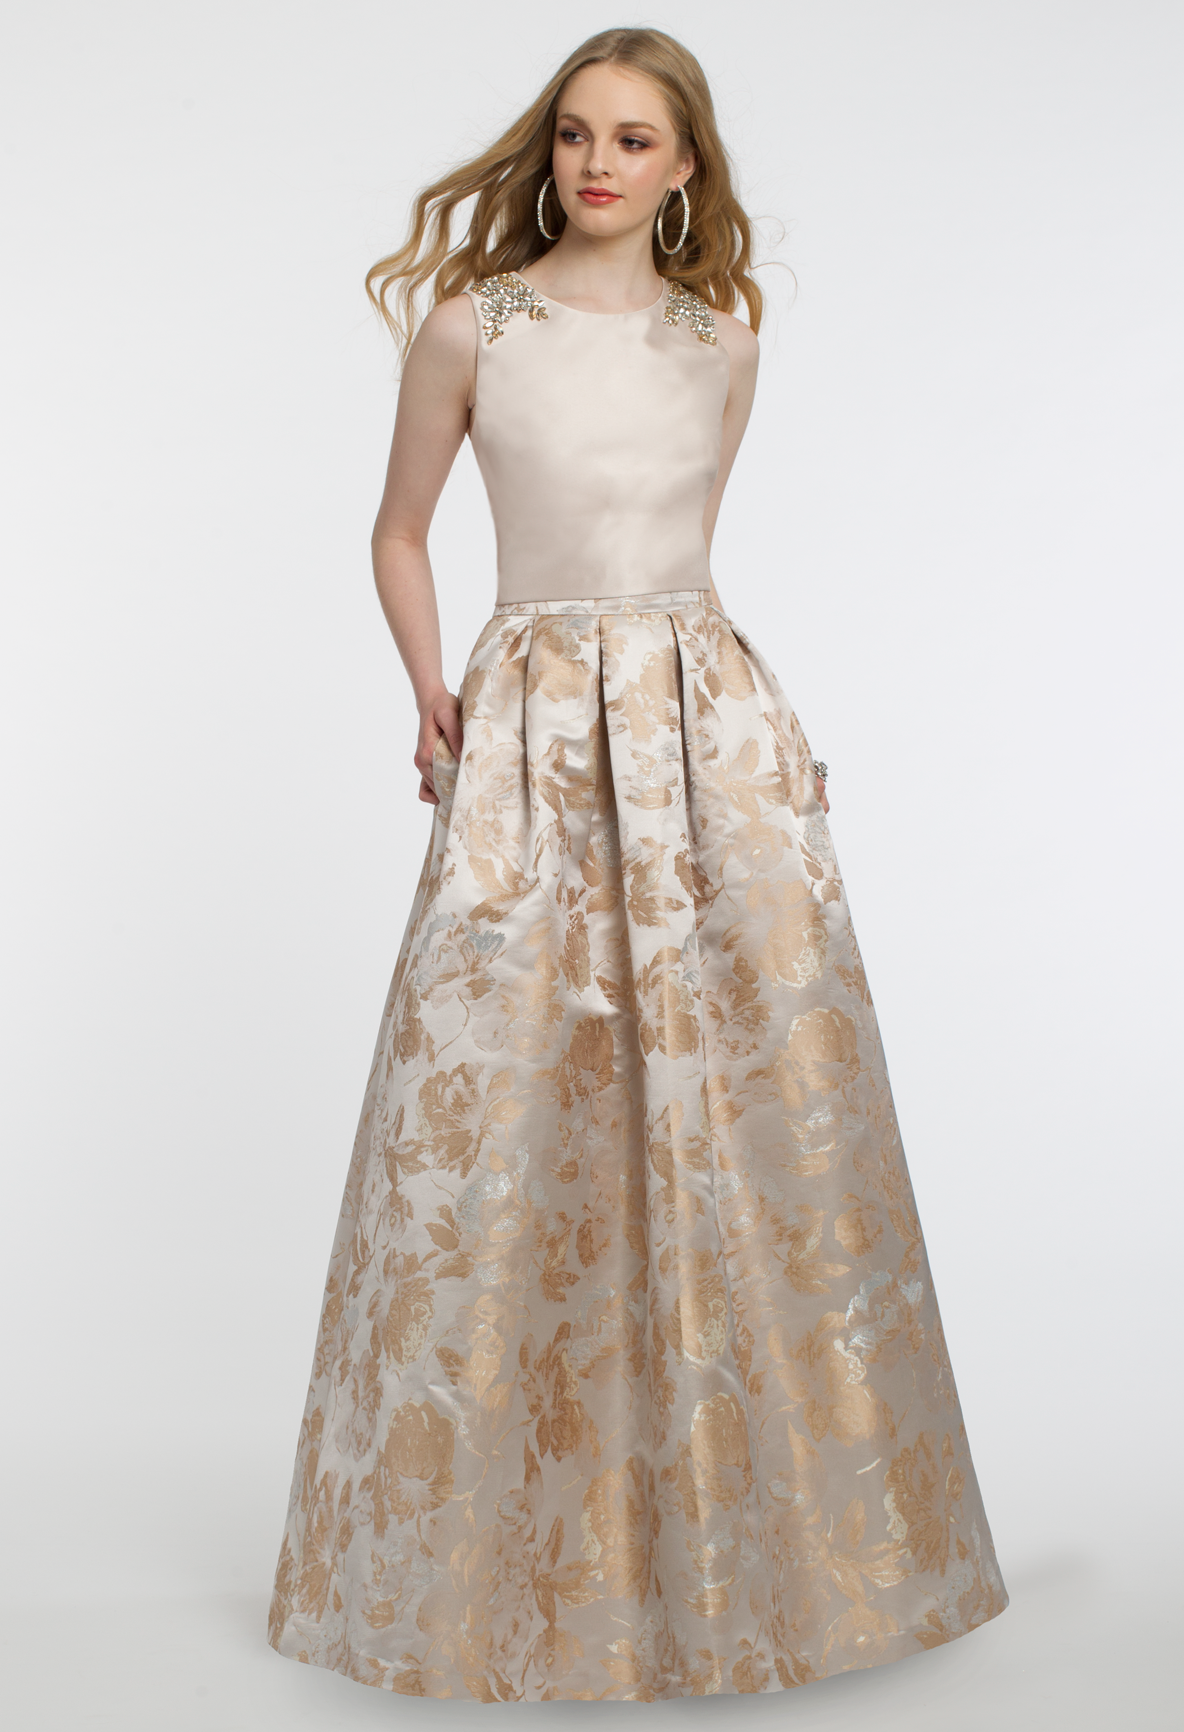 Shine for you special event in this brocade ballgown skirt! With its ...